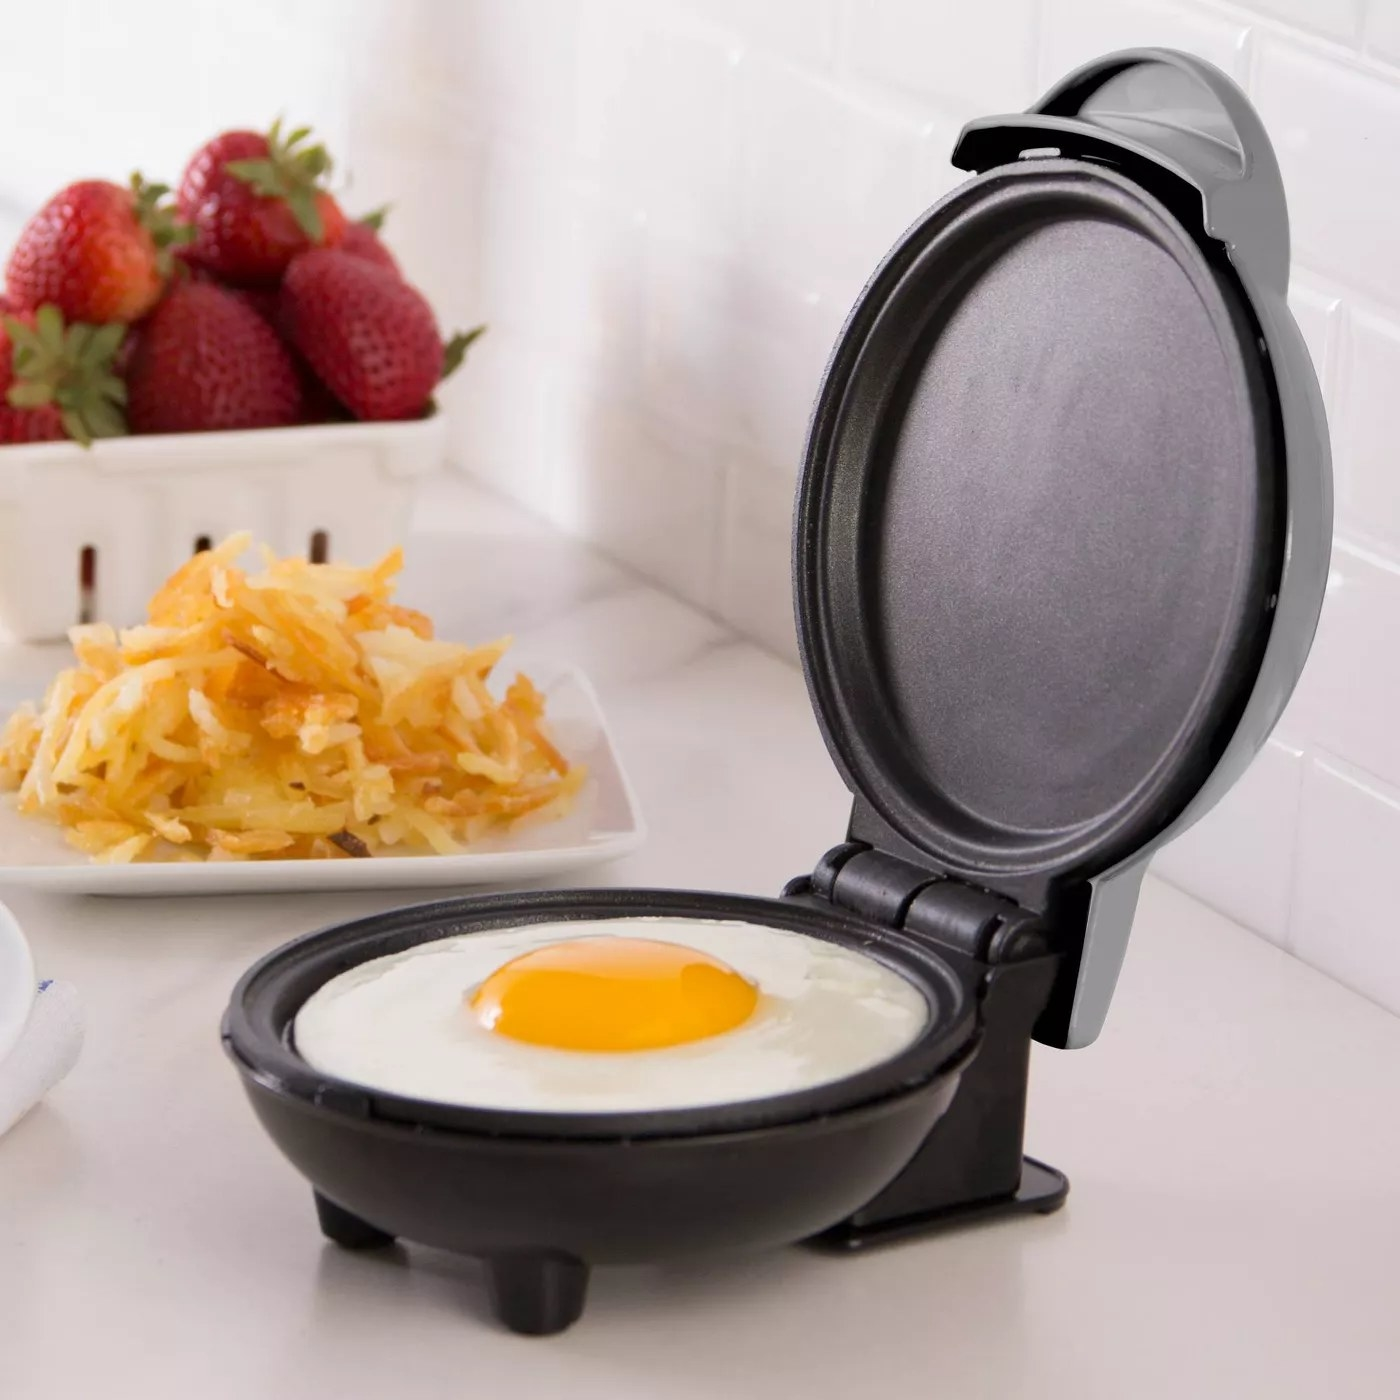 The mini griddle cooking an egg